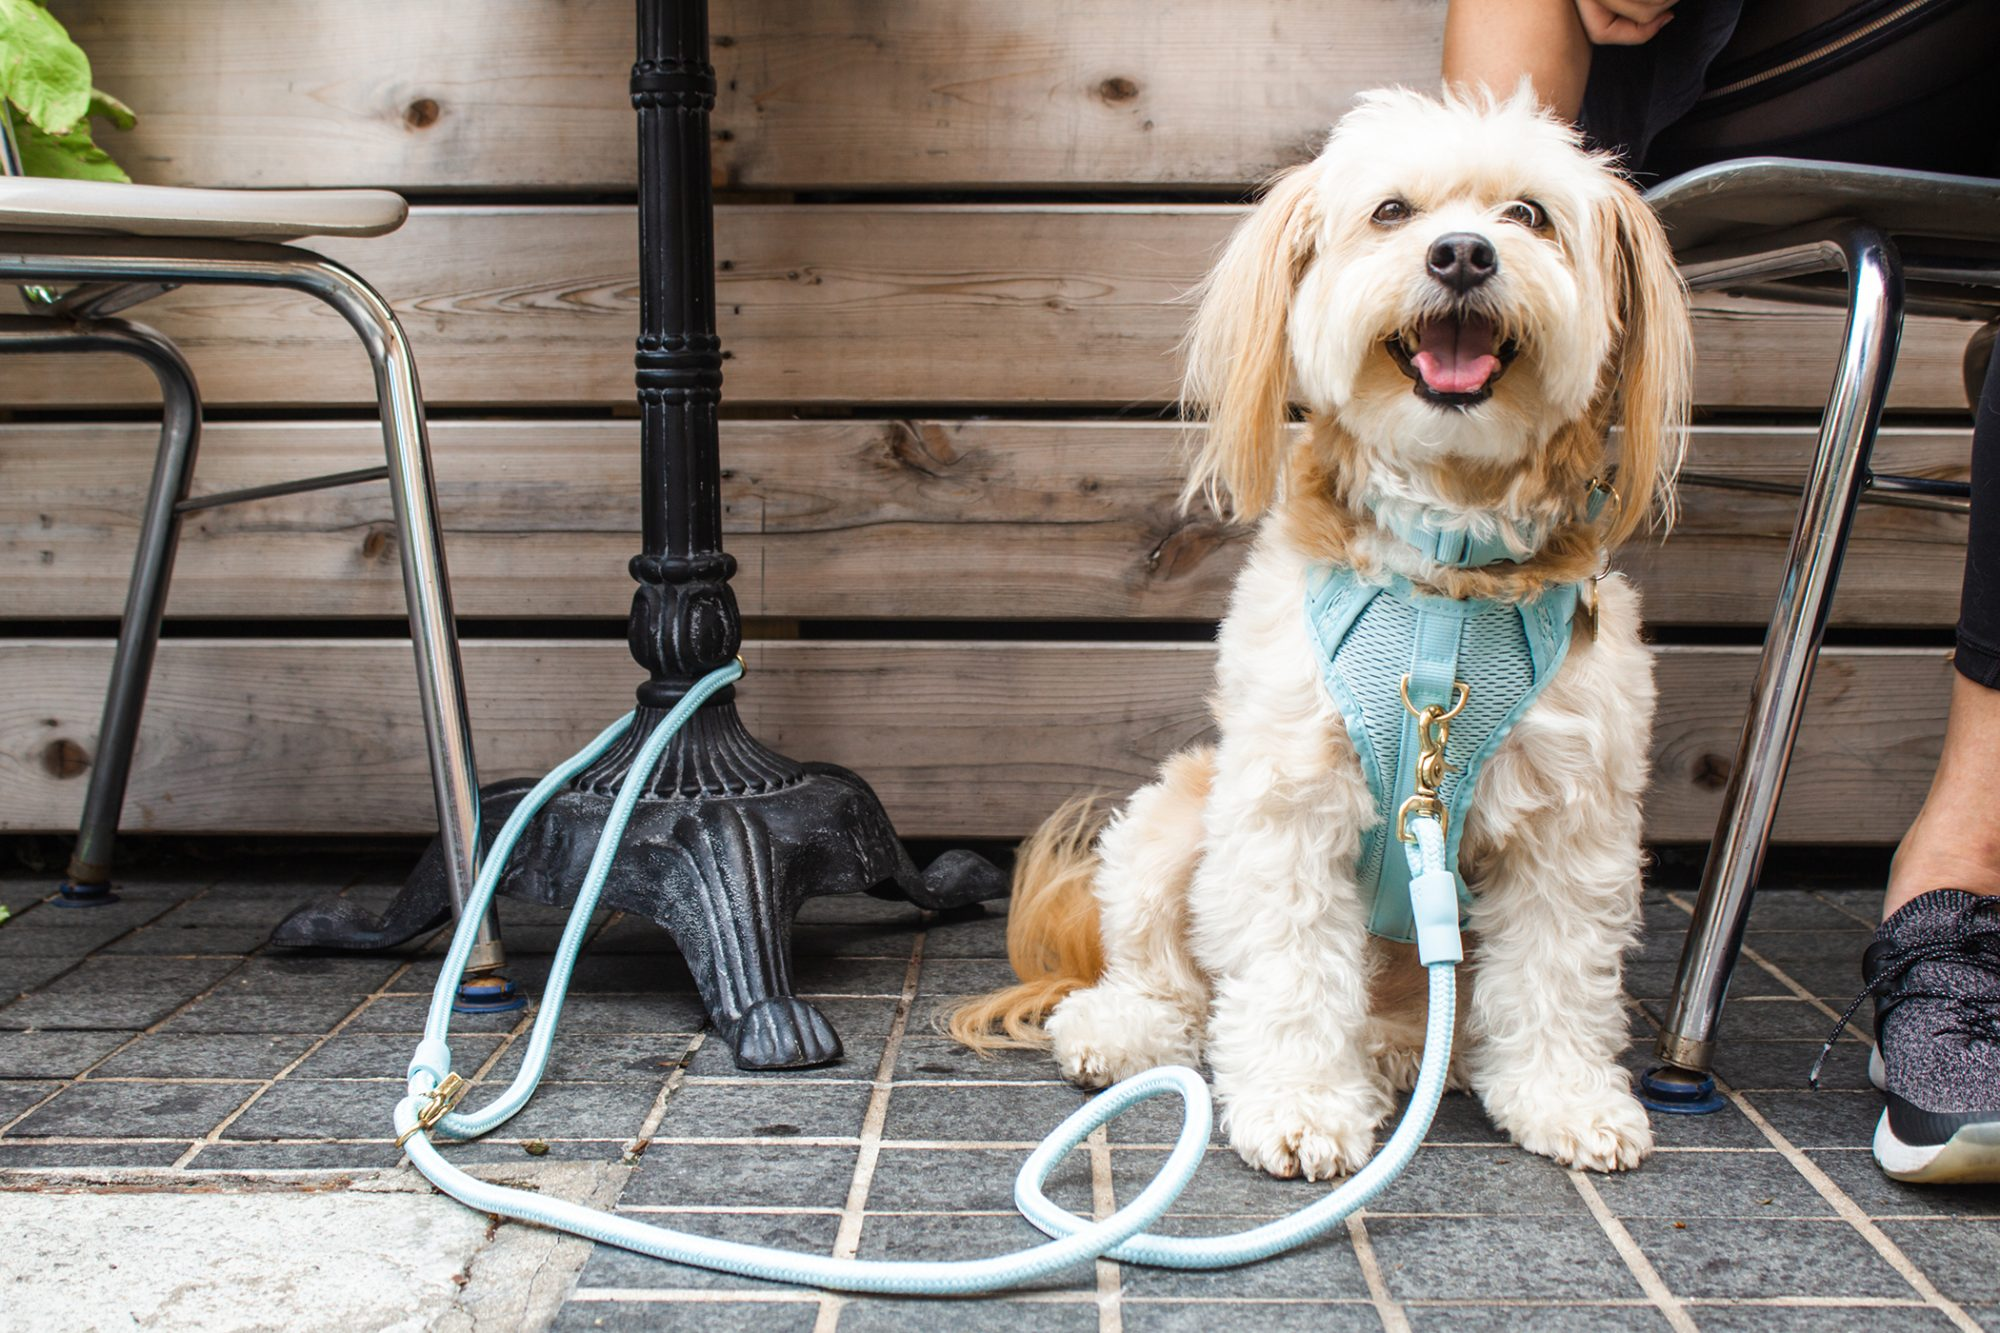 dog with light blue harness sitting next to person on an outdoor patio